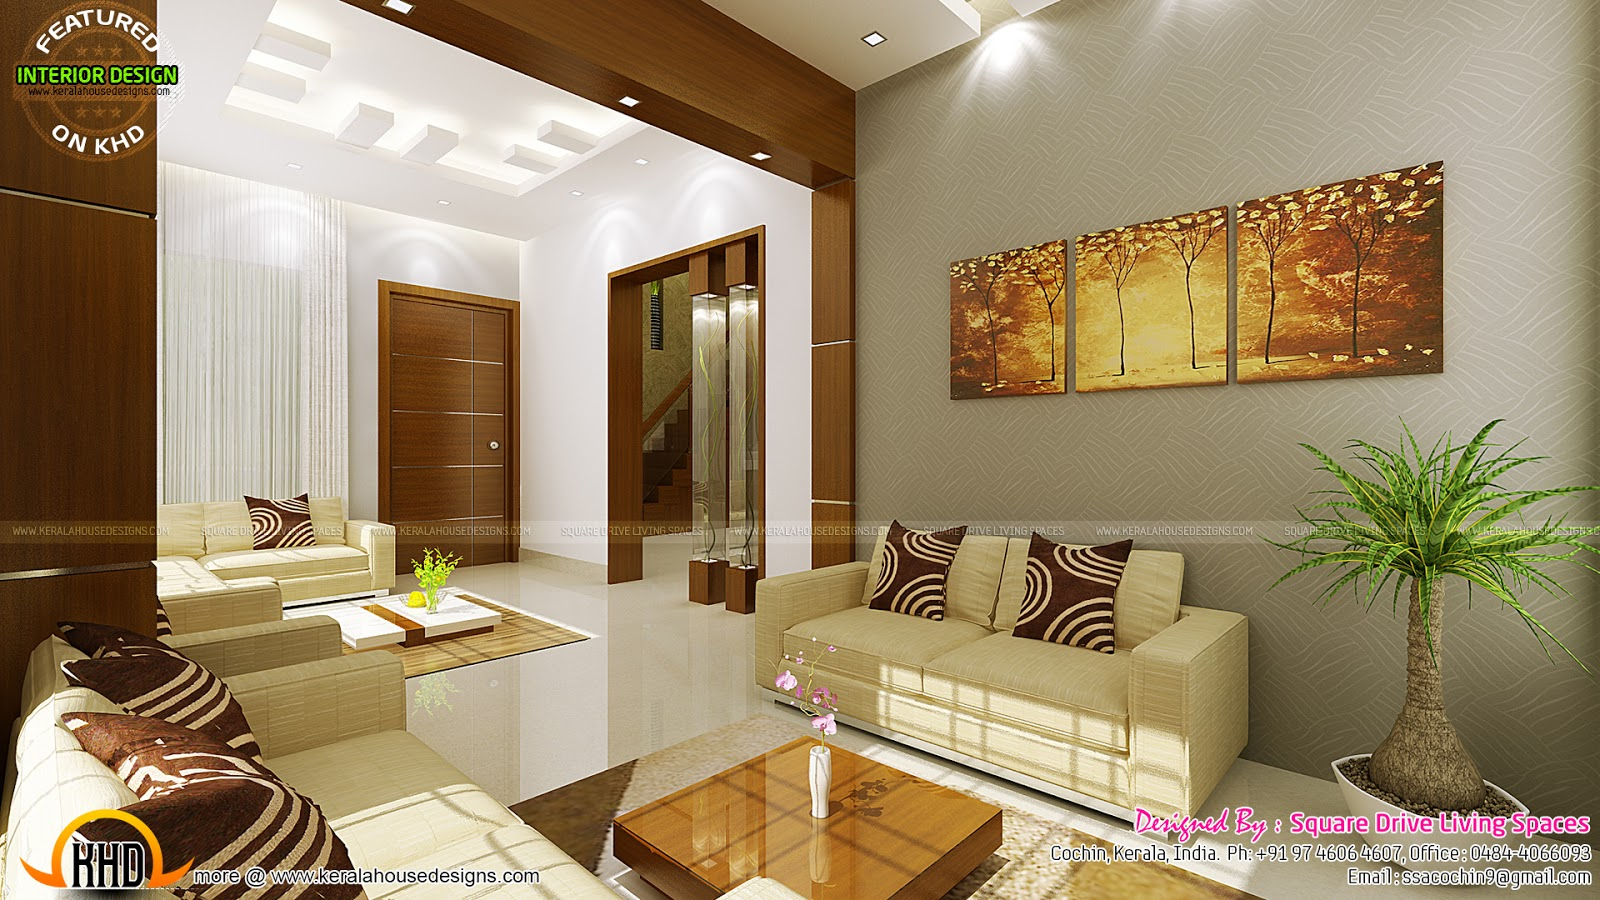 Contemporary kitchen dining and living room kerala home for Full home interior design